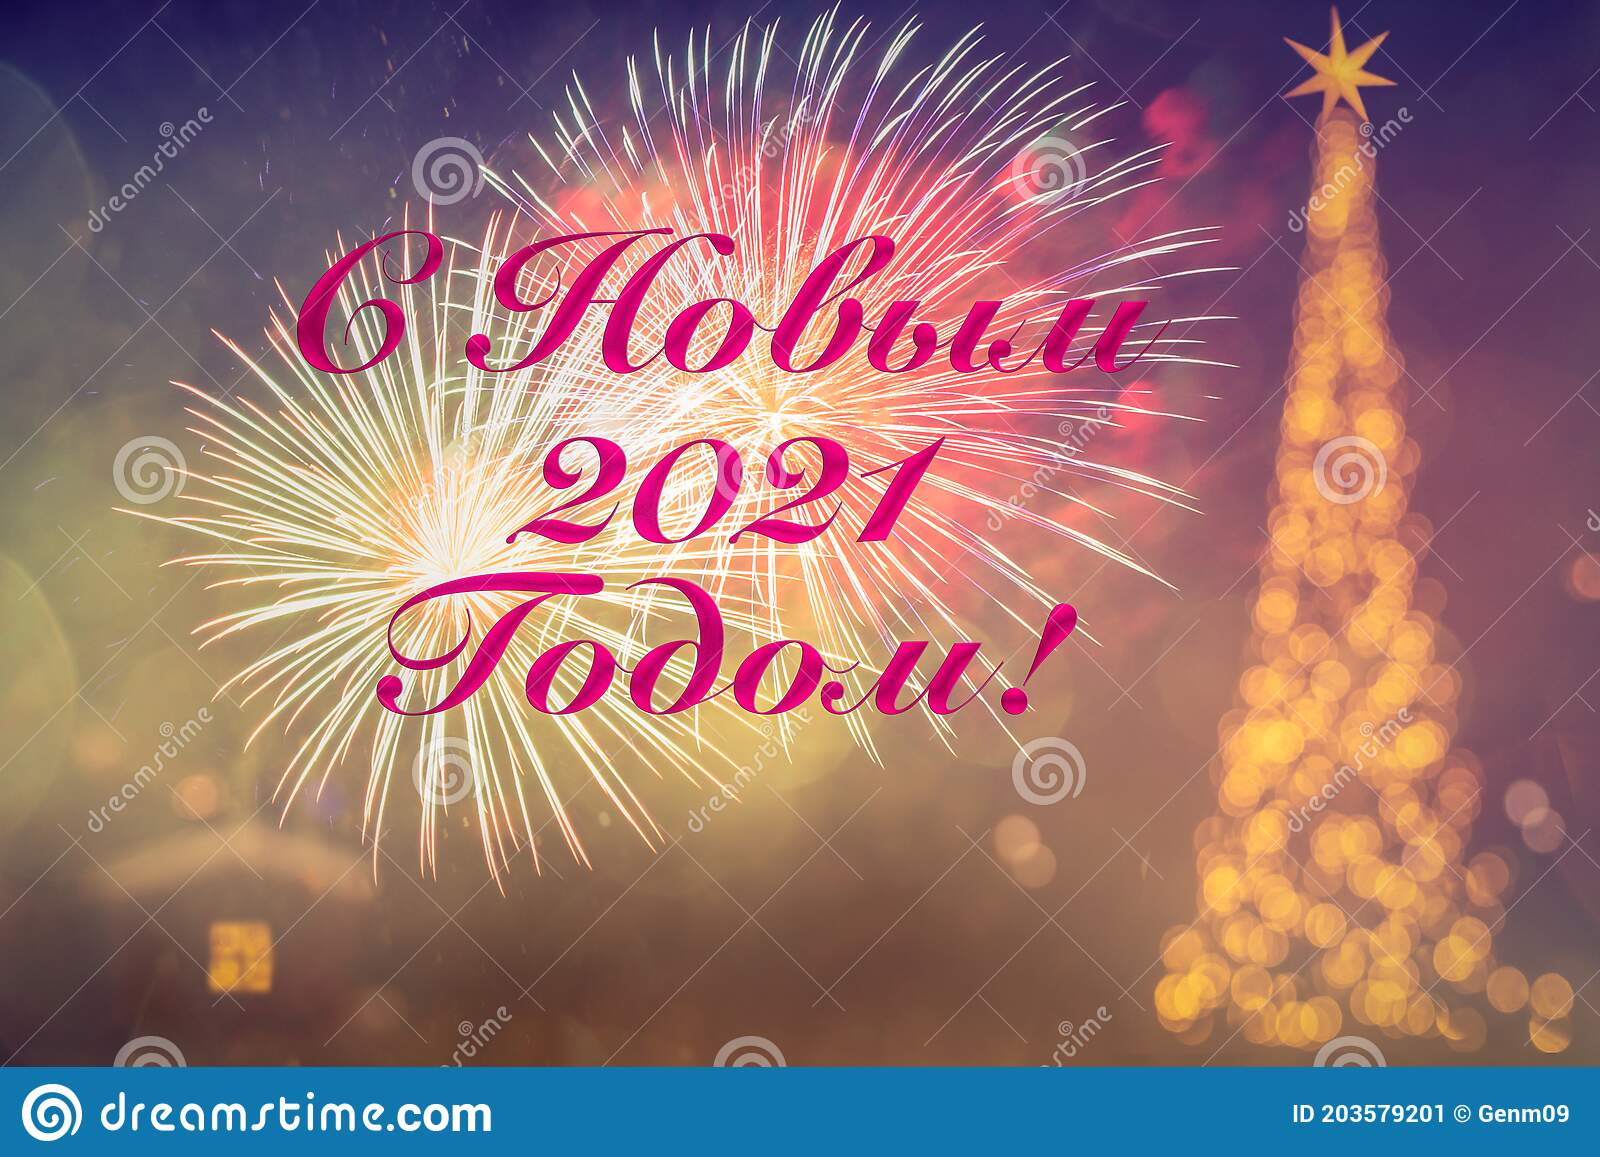 Russian Christmas For 2021 Happy New Year 2021 Text Written By Cyrillic In Russian Blurred Background Of Christmas Tree With Golden Lights Illumination Stock Image Image Of Greeting January 203579201